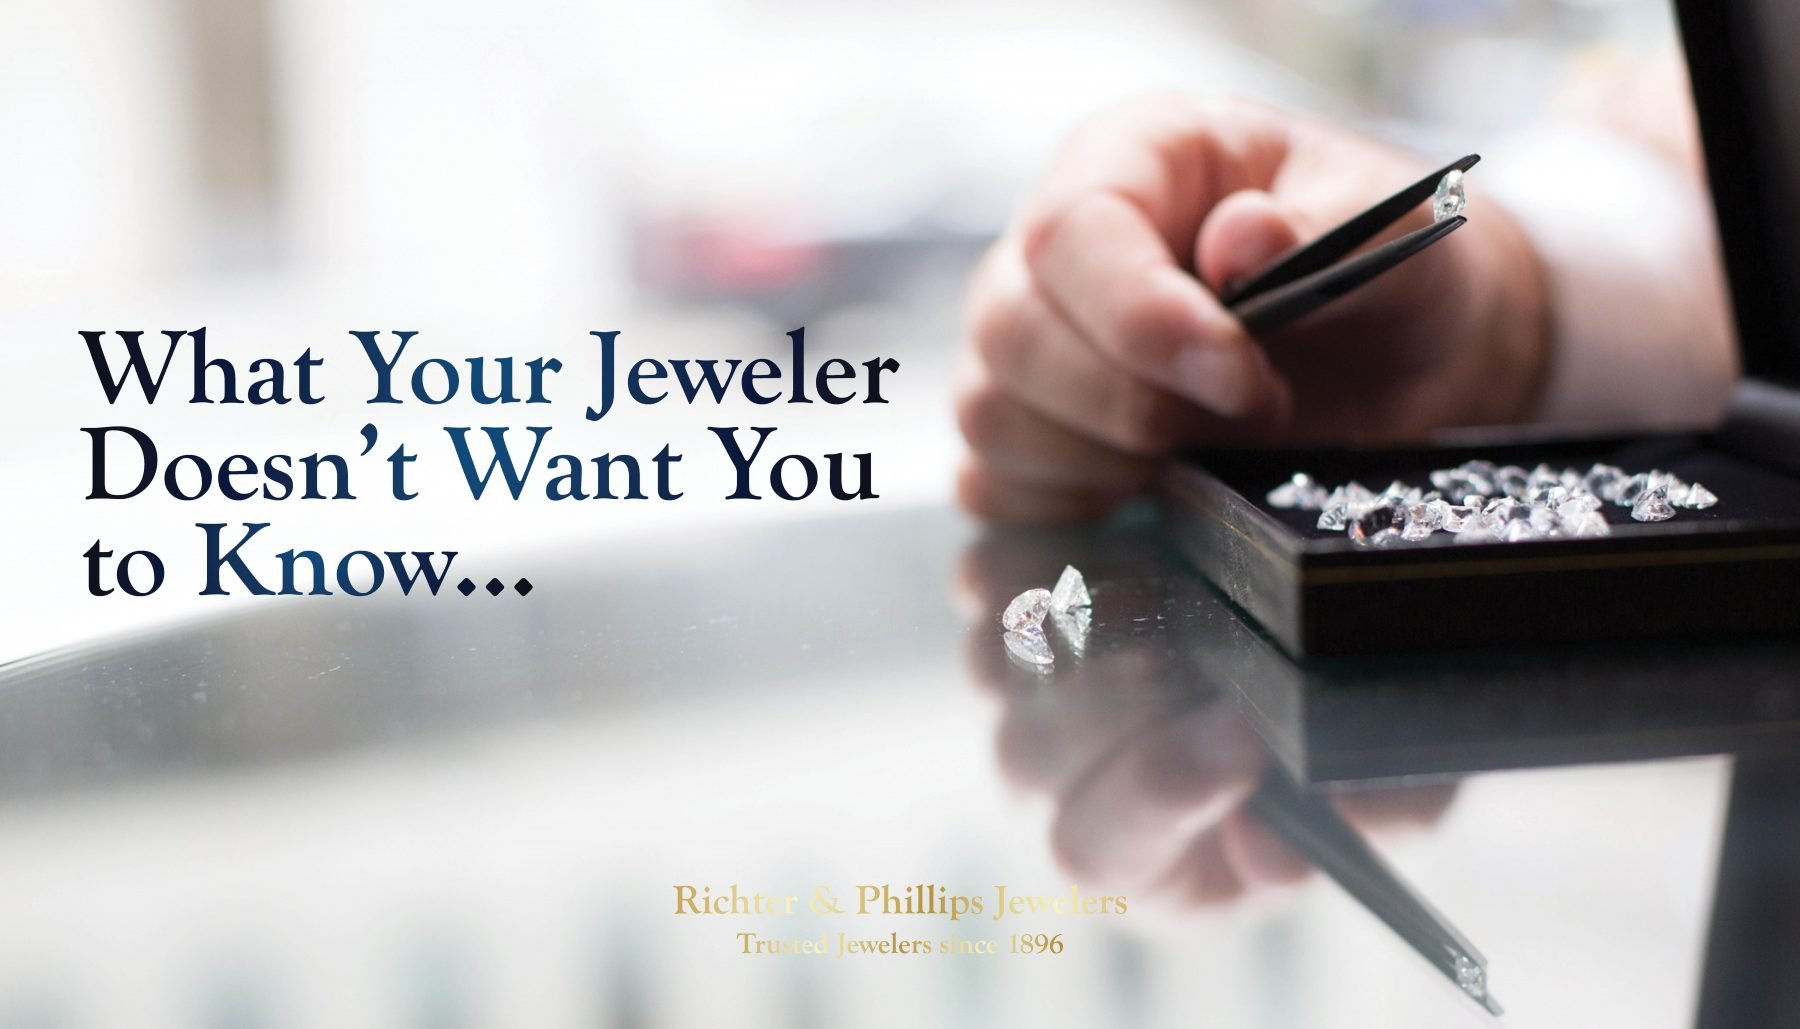 5 Things Your Jeweler Doesn't Want You to Know About Shopping for an Engagement Ring